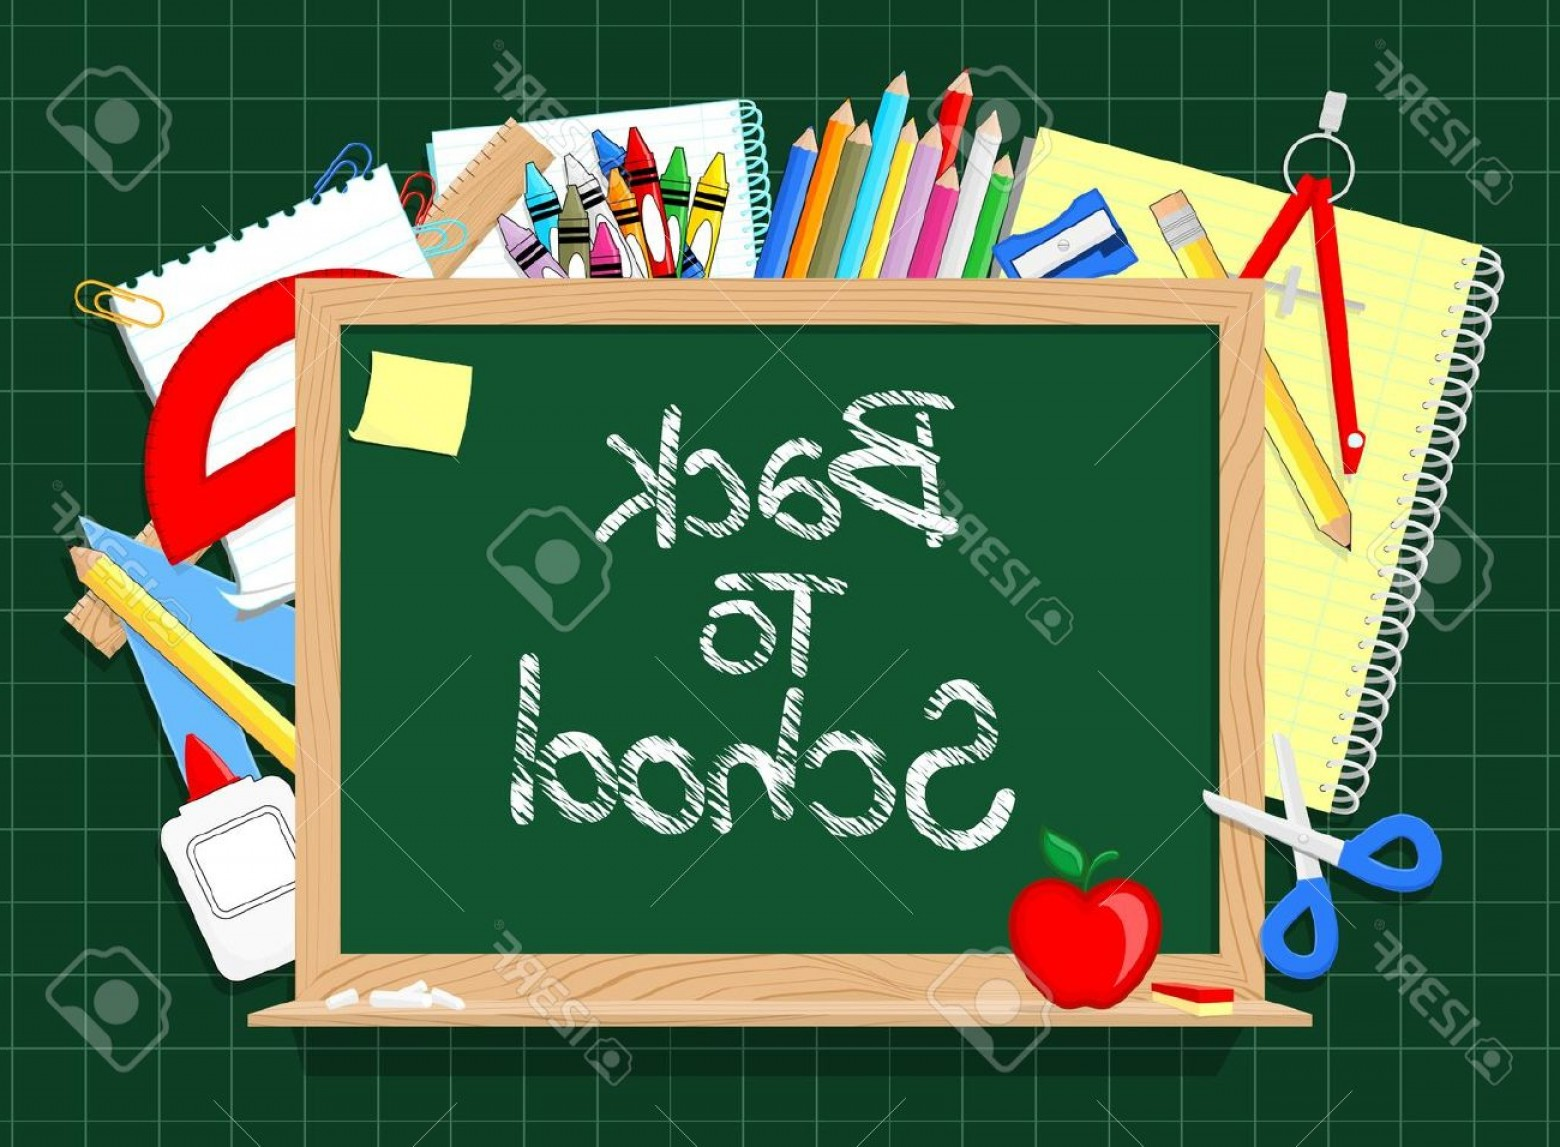 Individual School Supplies Vector: Photoblackboard And School Education Supplies Items Background In Vector Format Very Easy To Edit Individ